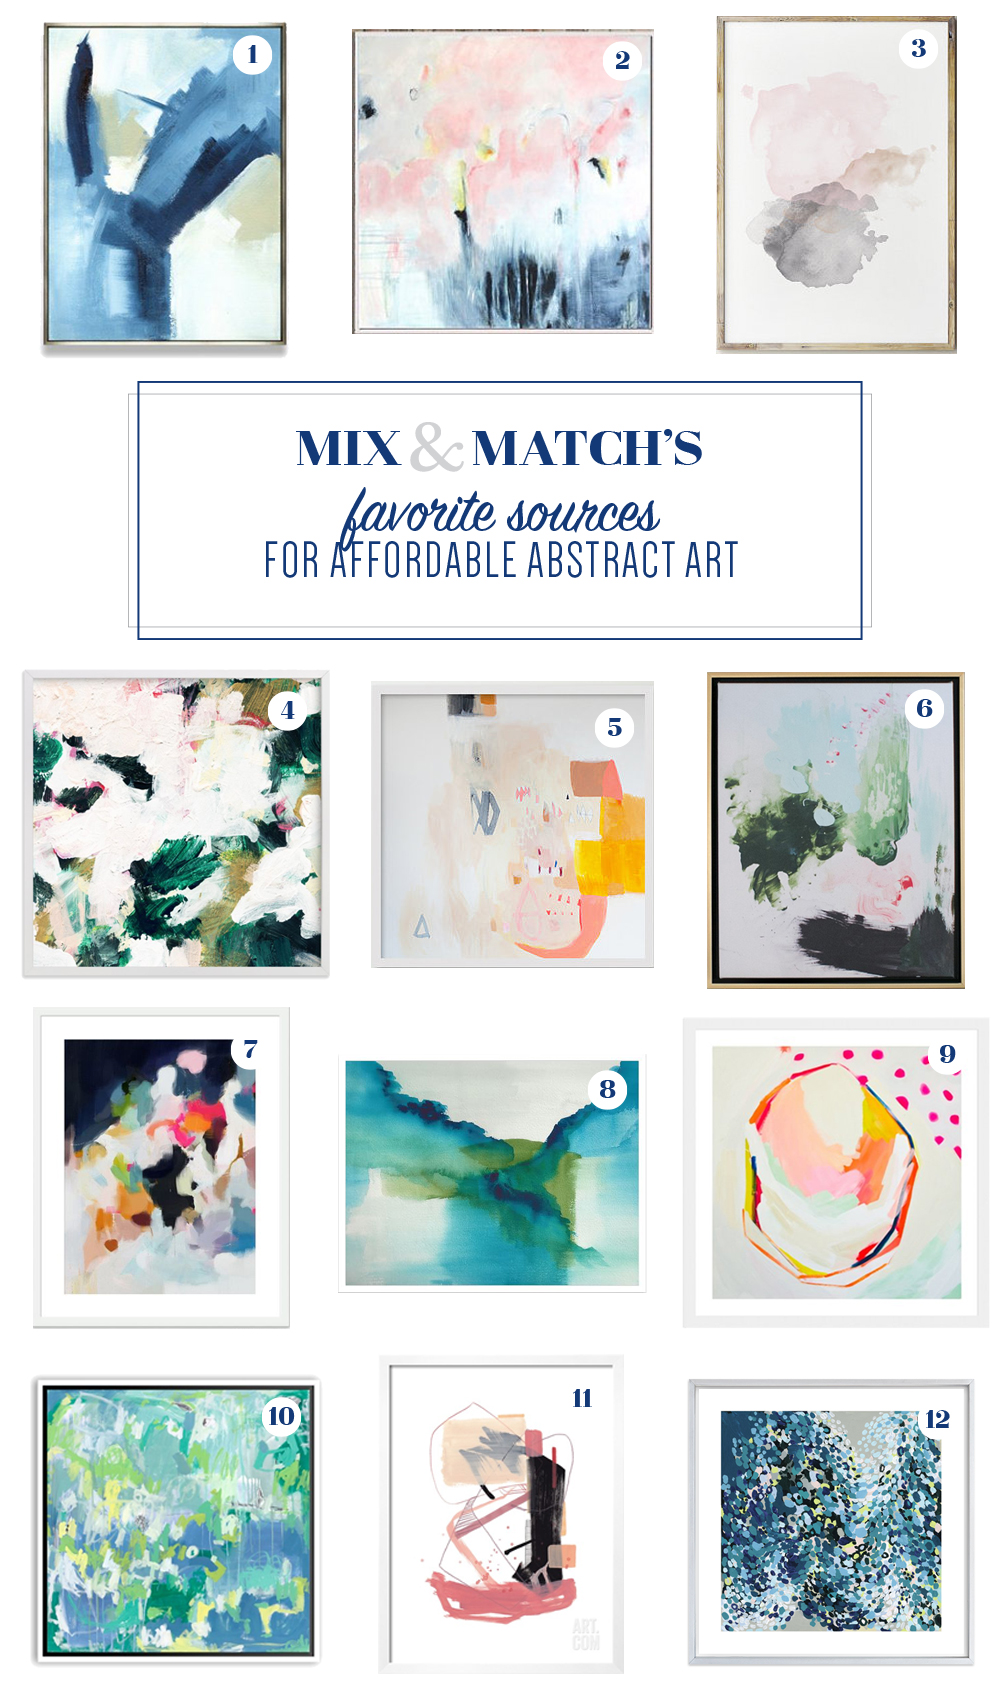 Favorite sources for affordable abstract art